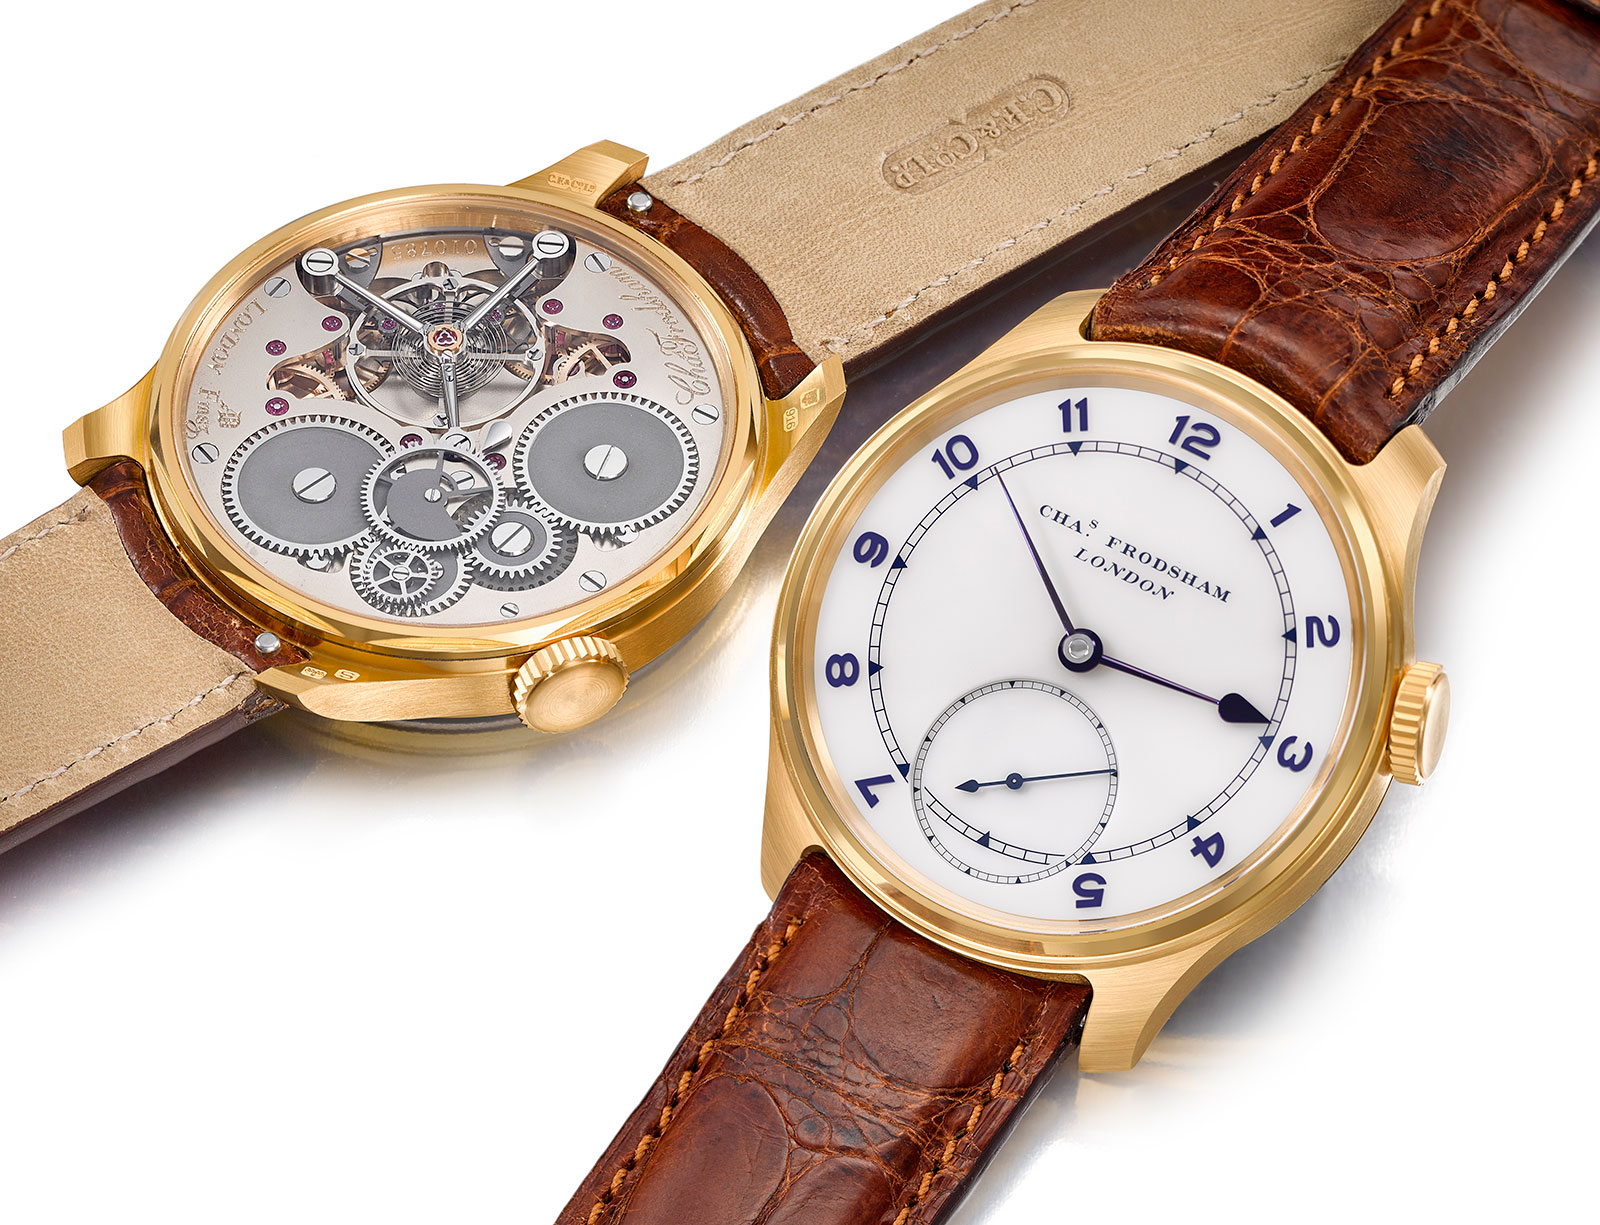 Charles Frodsham Wristwatch Double Impulse Chronometer